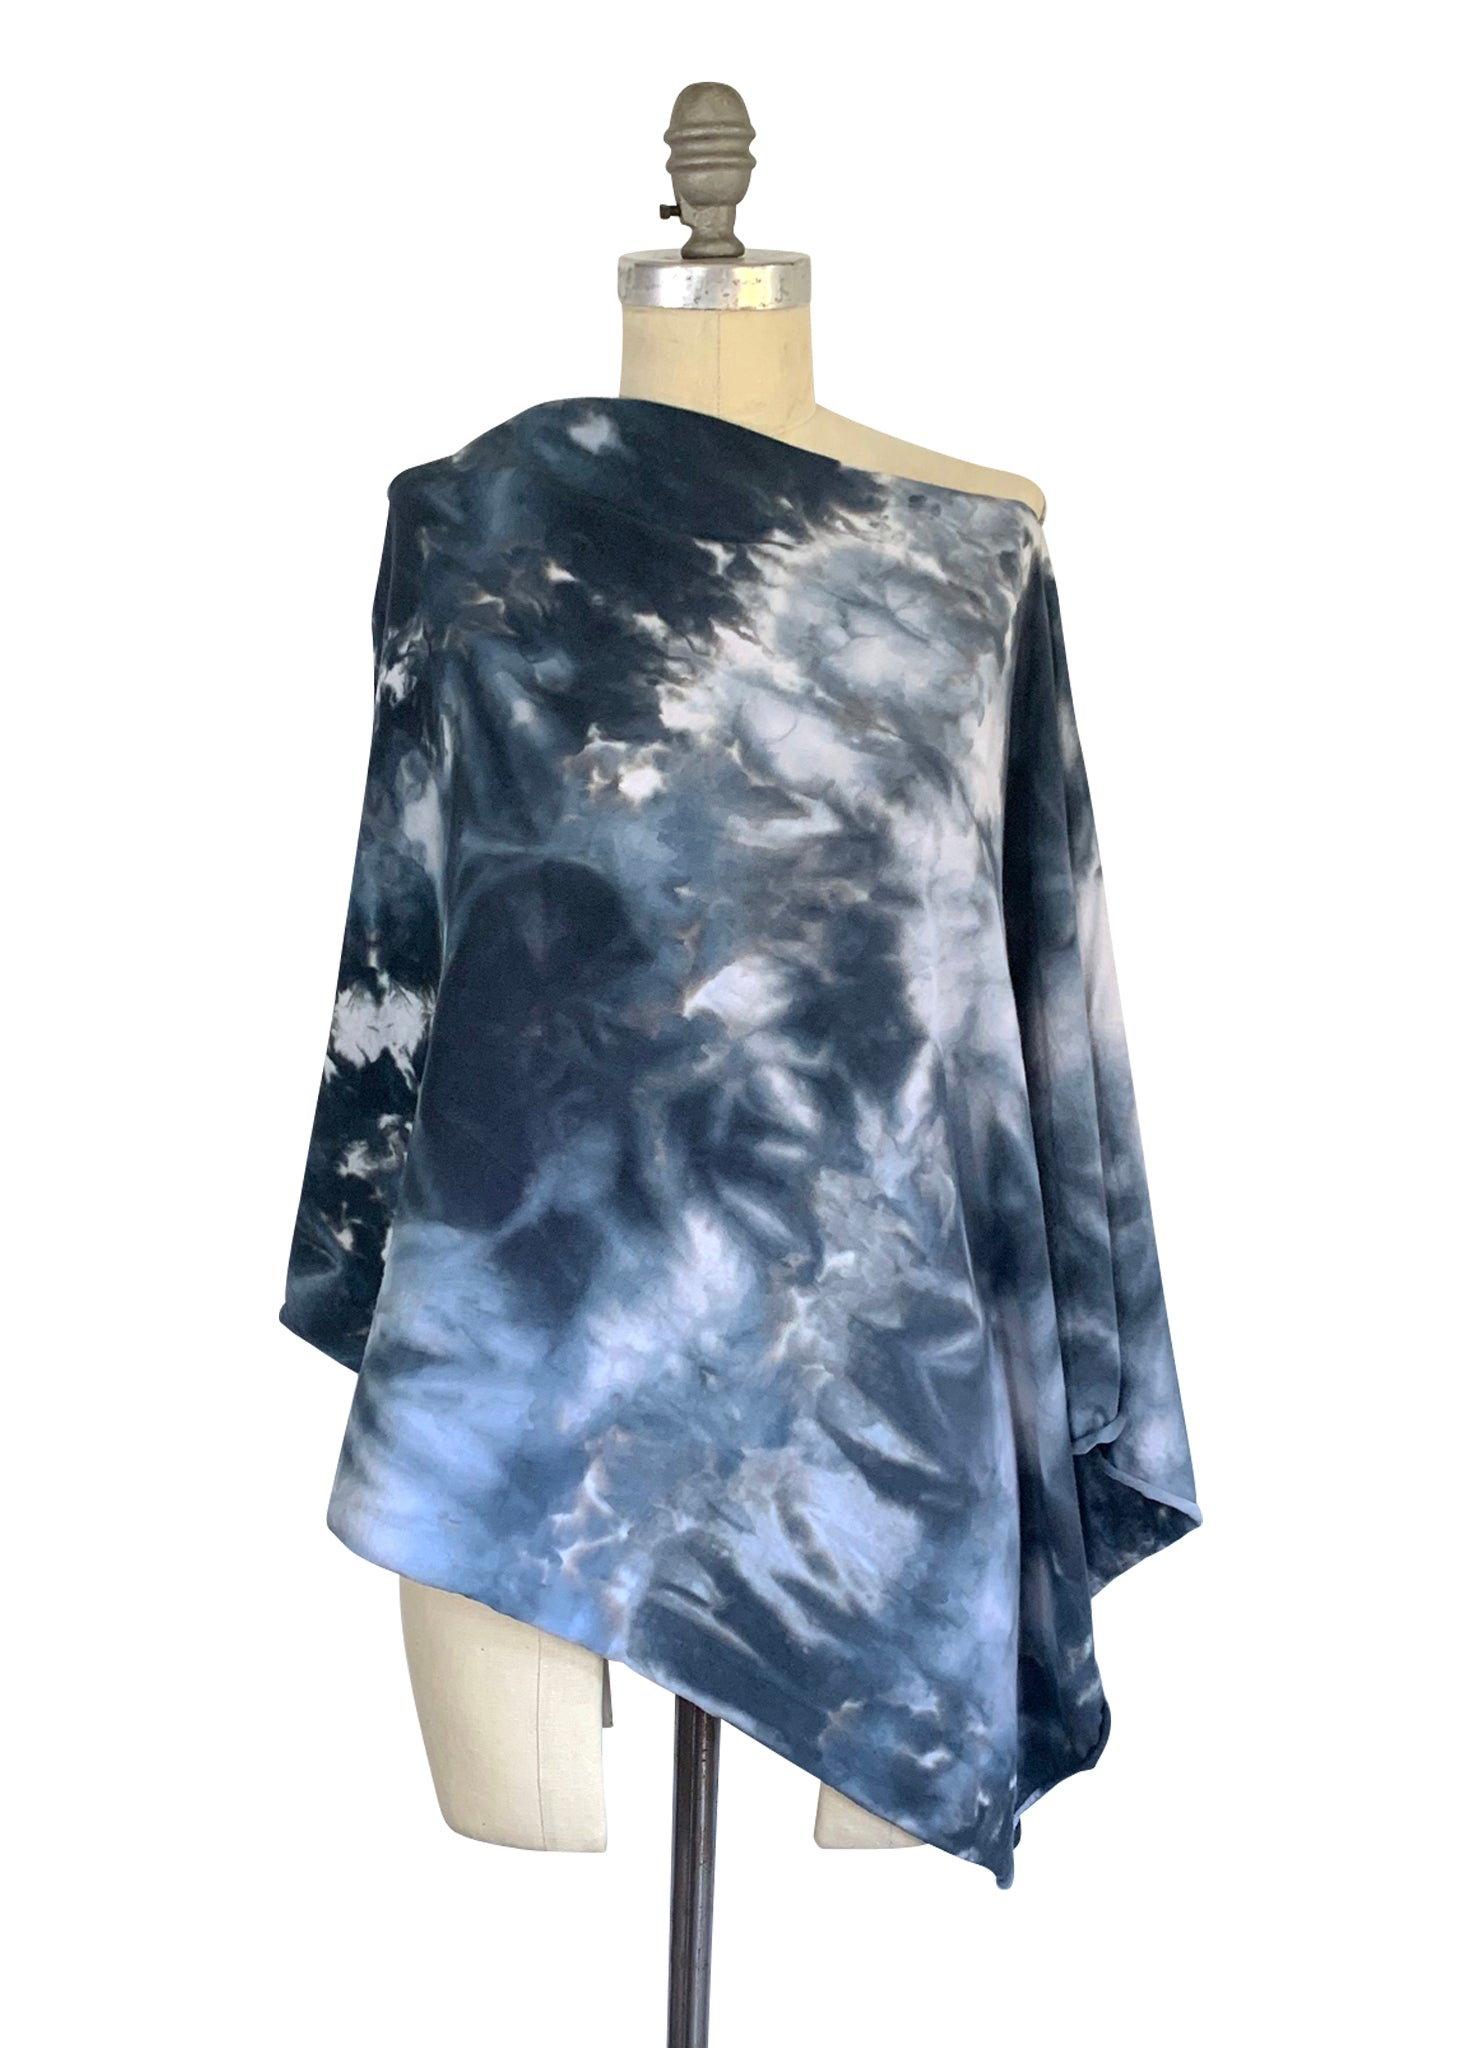 5 in 1 Poncho in Moon Stone - Top - Dyetology